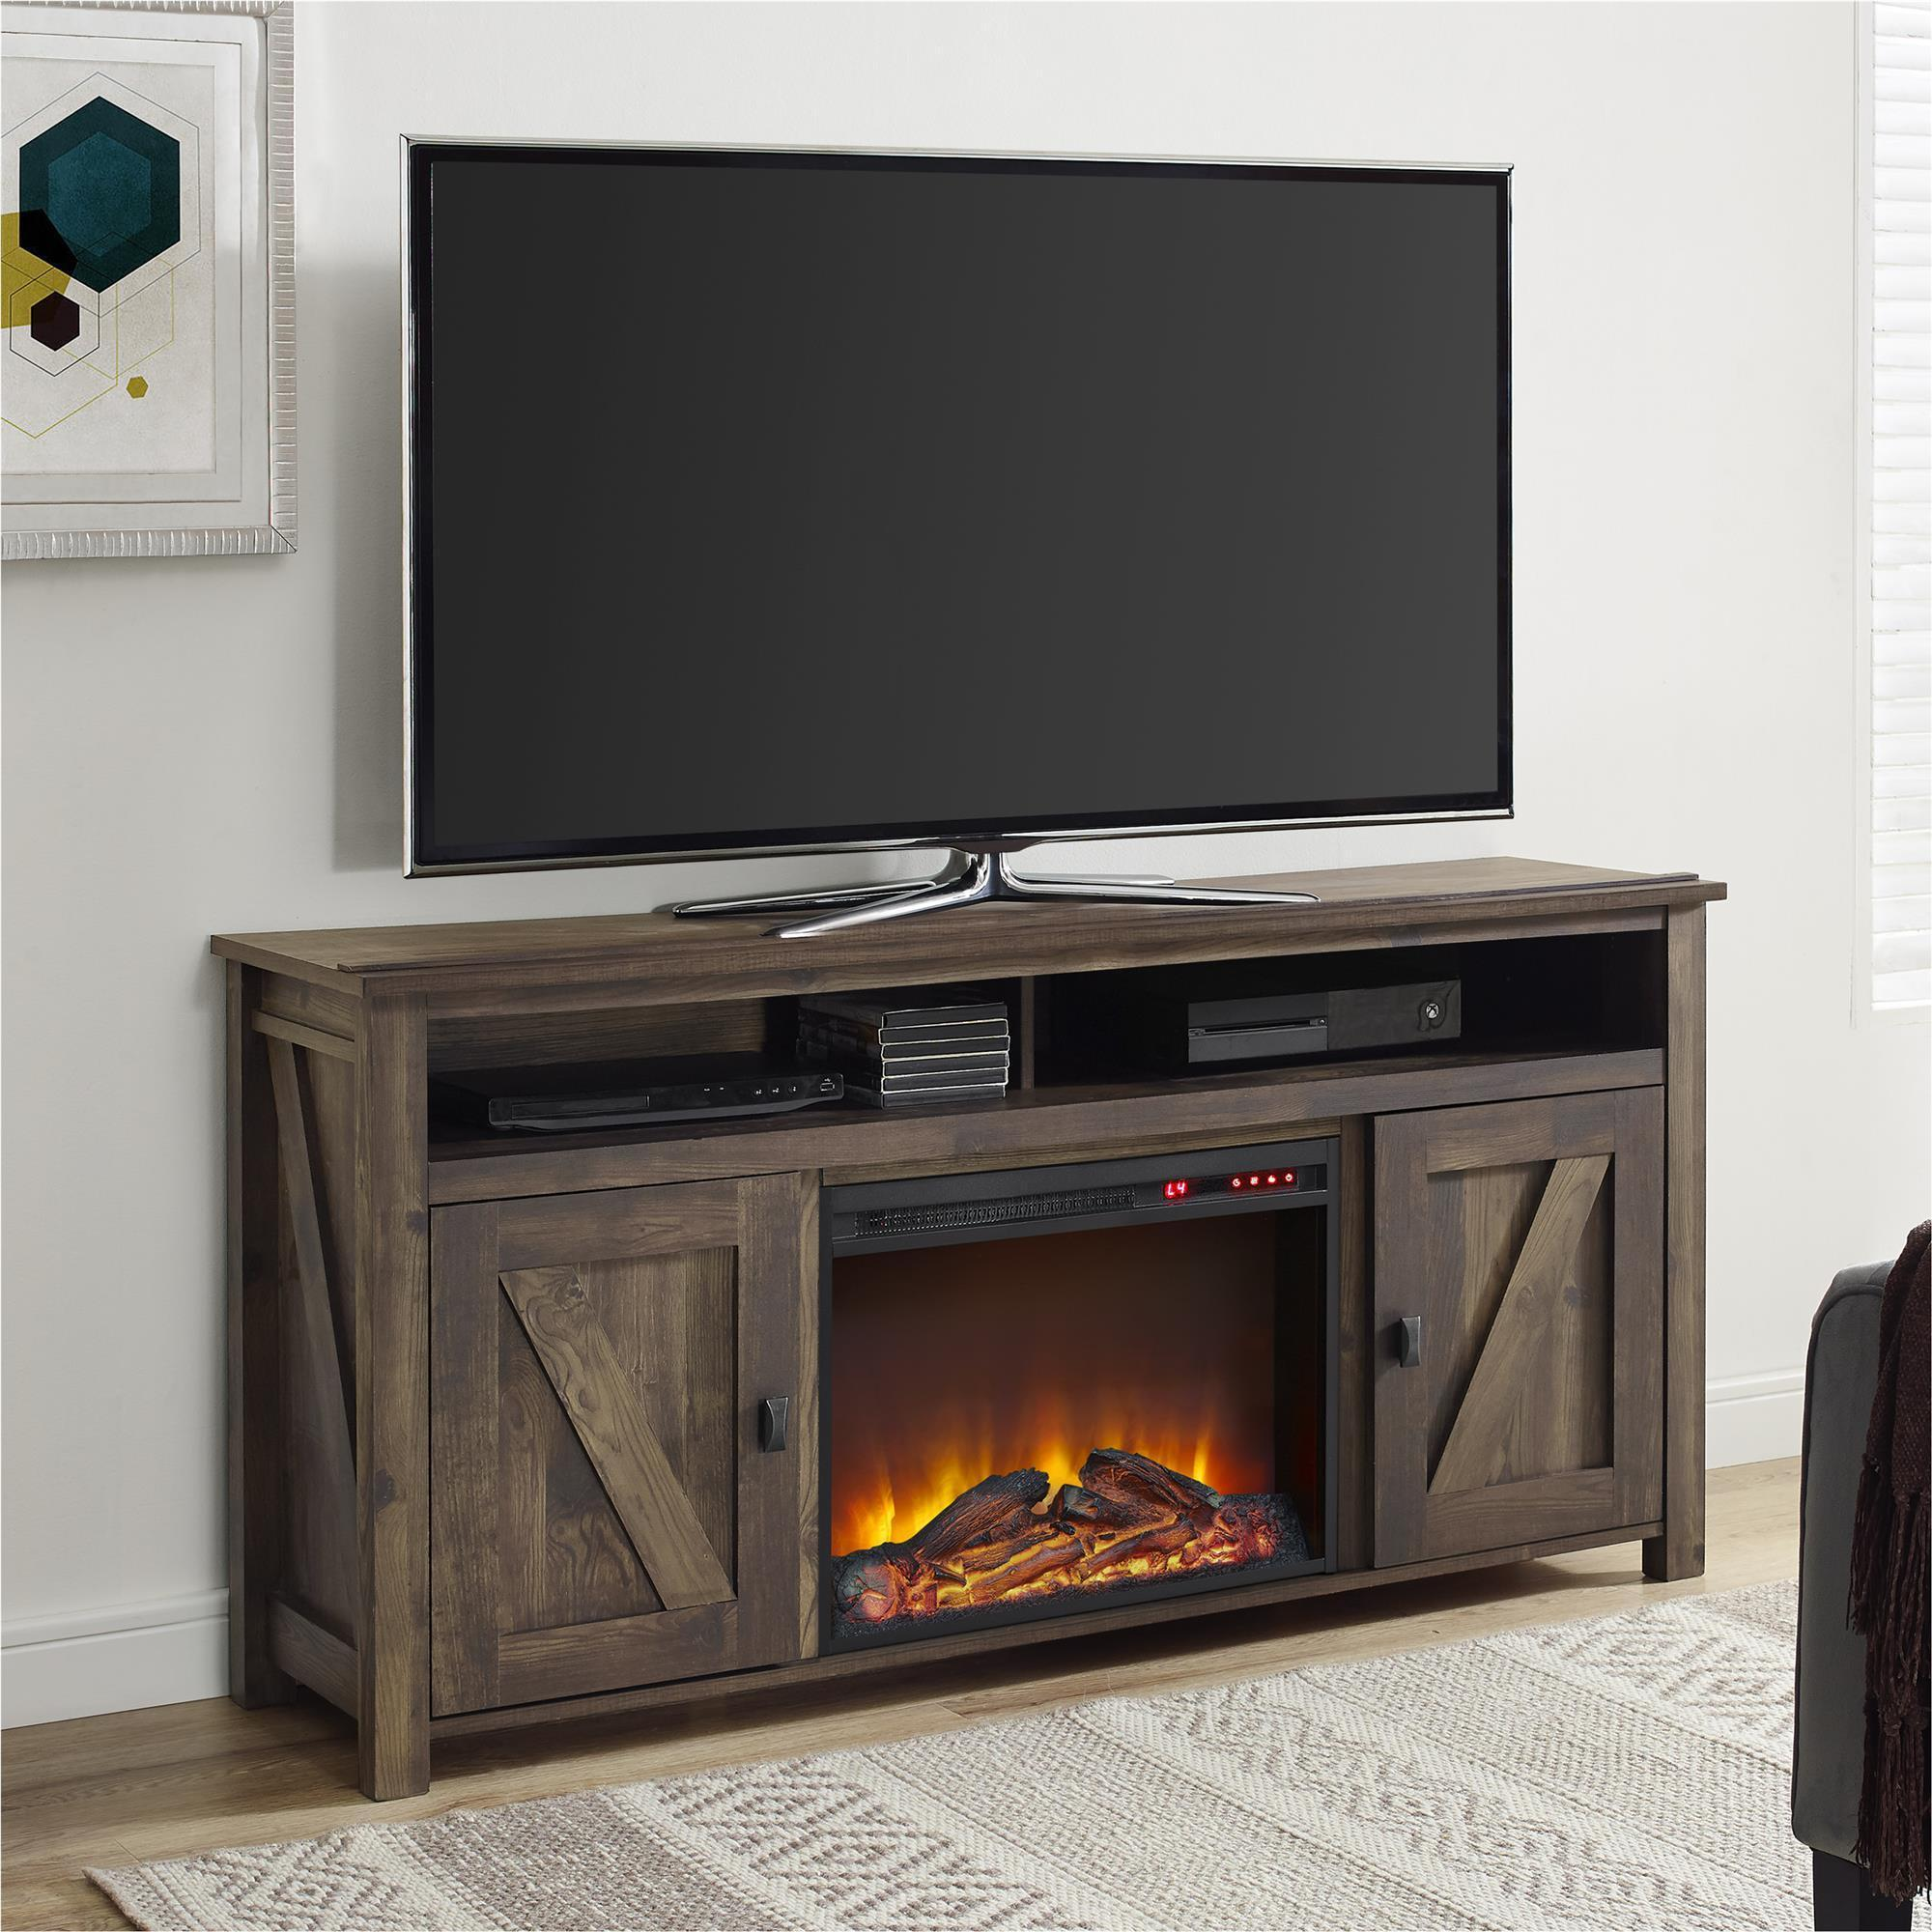 sandstone for design electric product over media image uts look center mcleland fireplace with scl colton to click b fingerhut full hover zoom